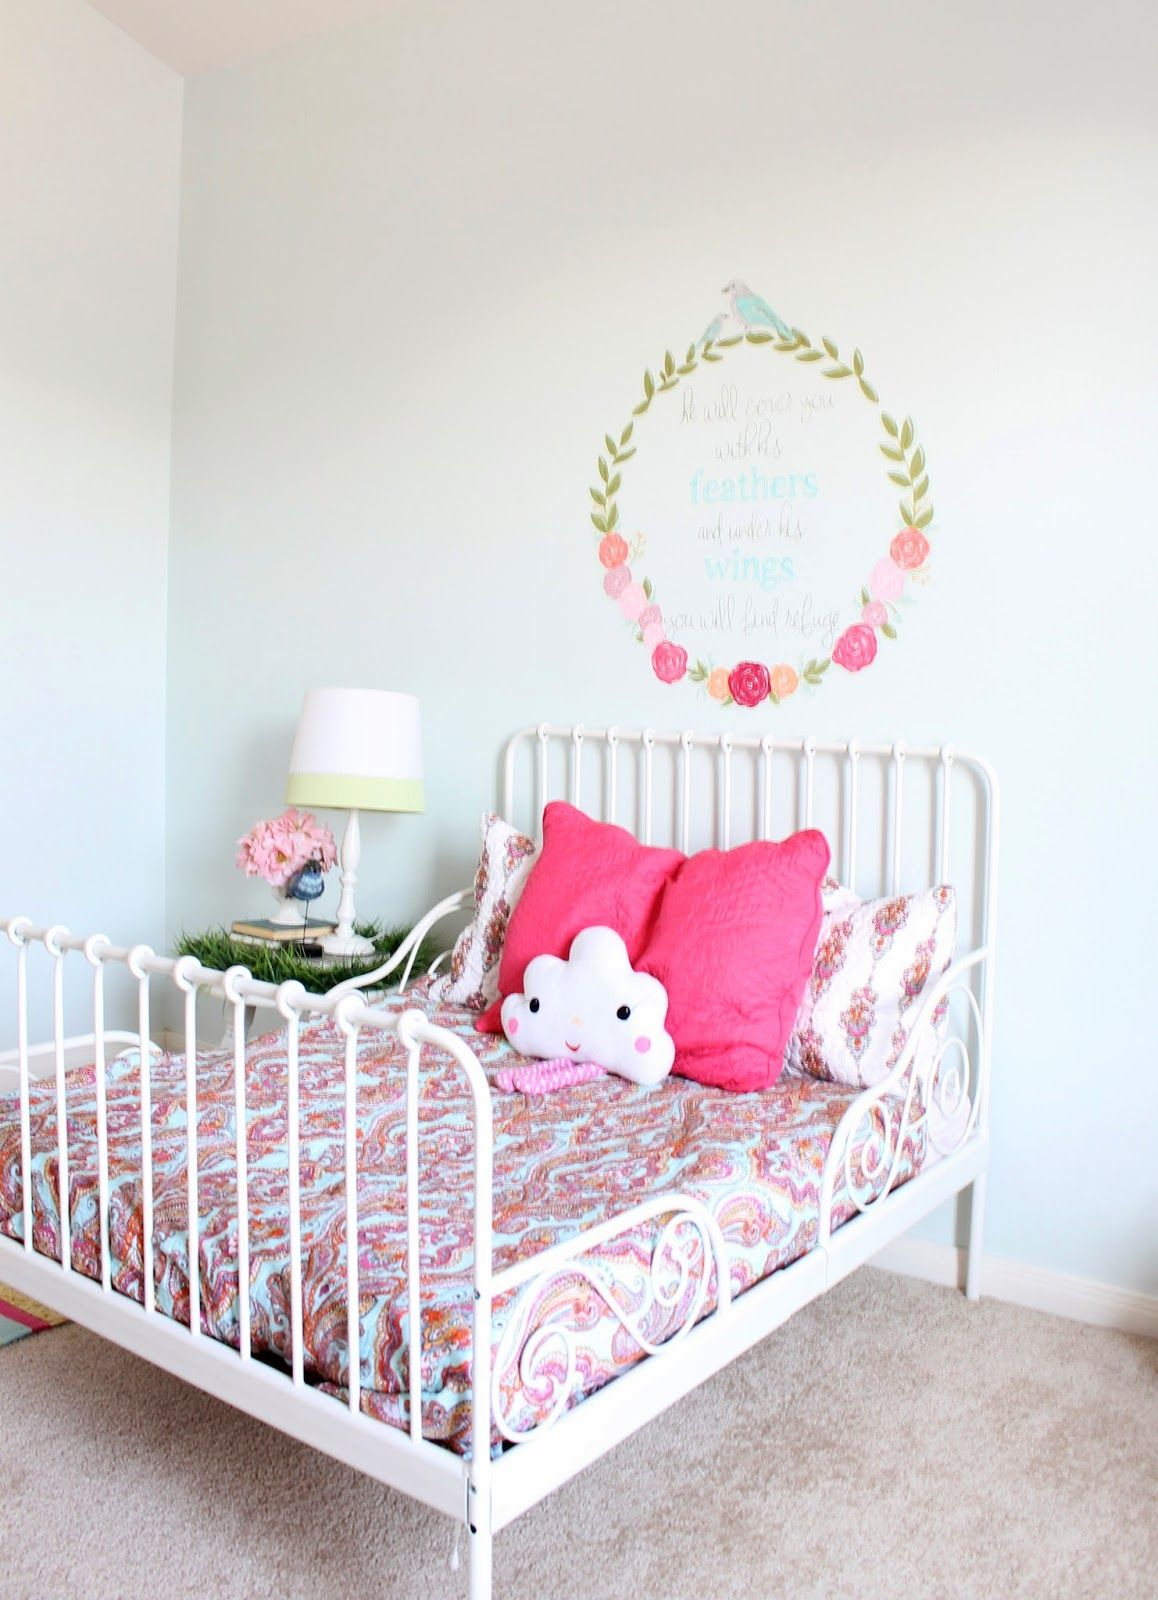 The Ragged Wren Girls Room MakeoverFinally